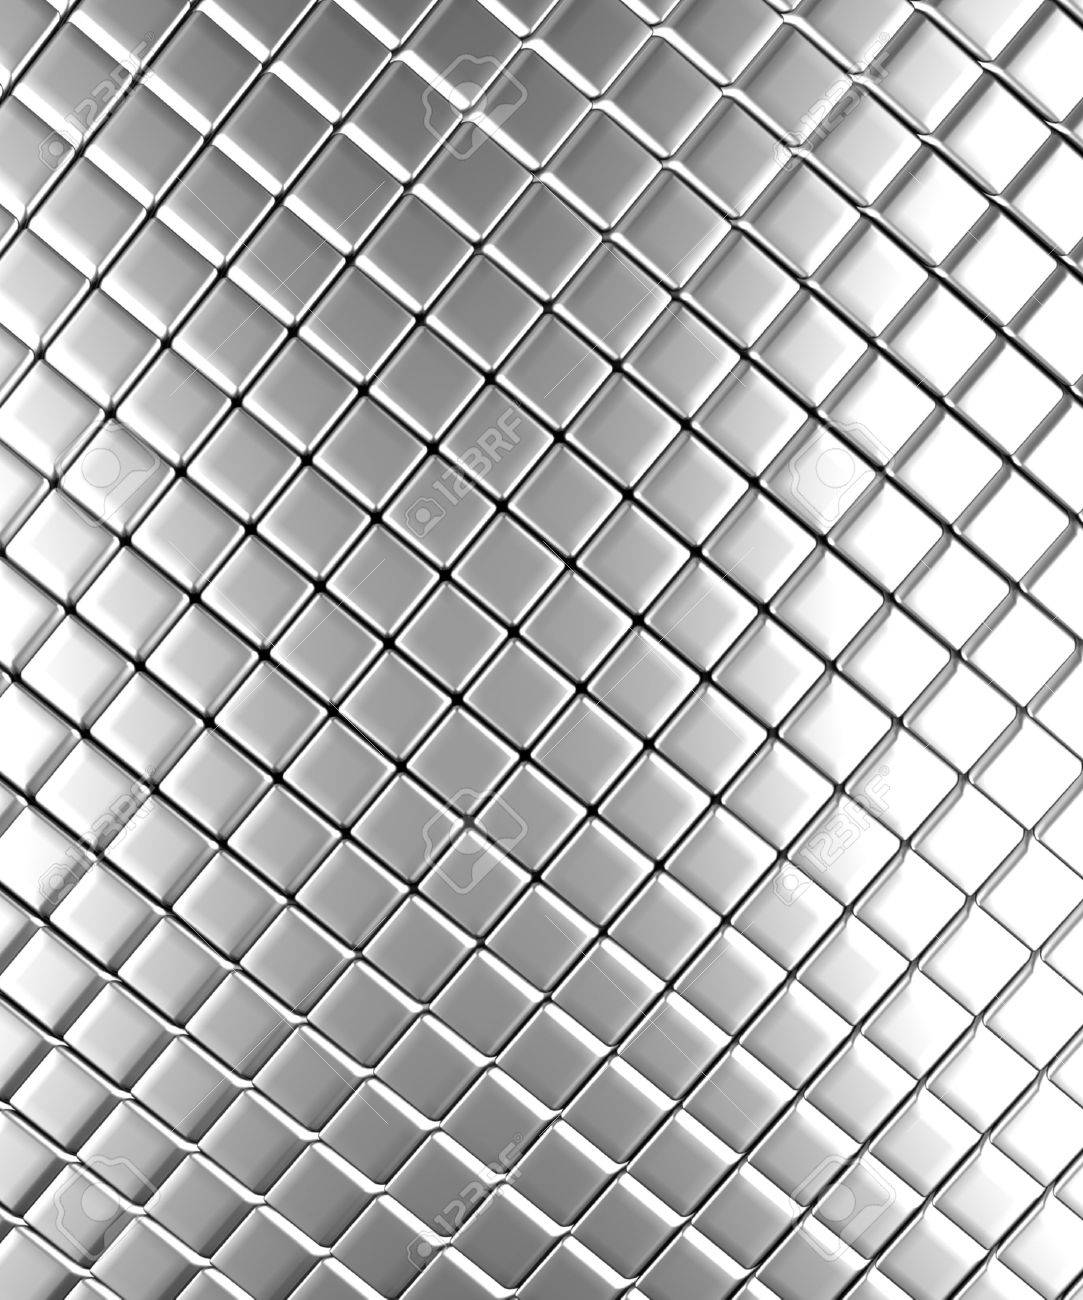 Square Pattern Aluminum Background 3d Rendered Stock Photo 1083x1300